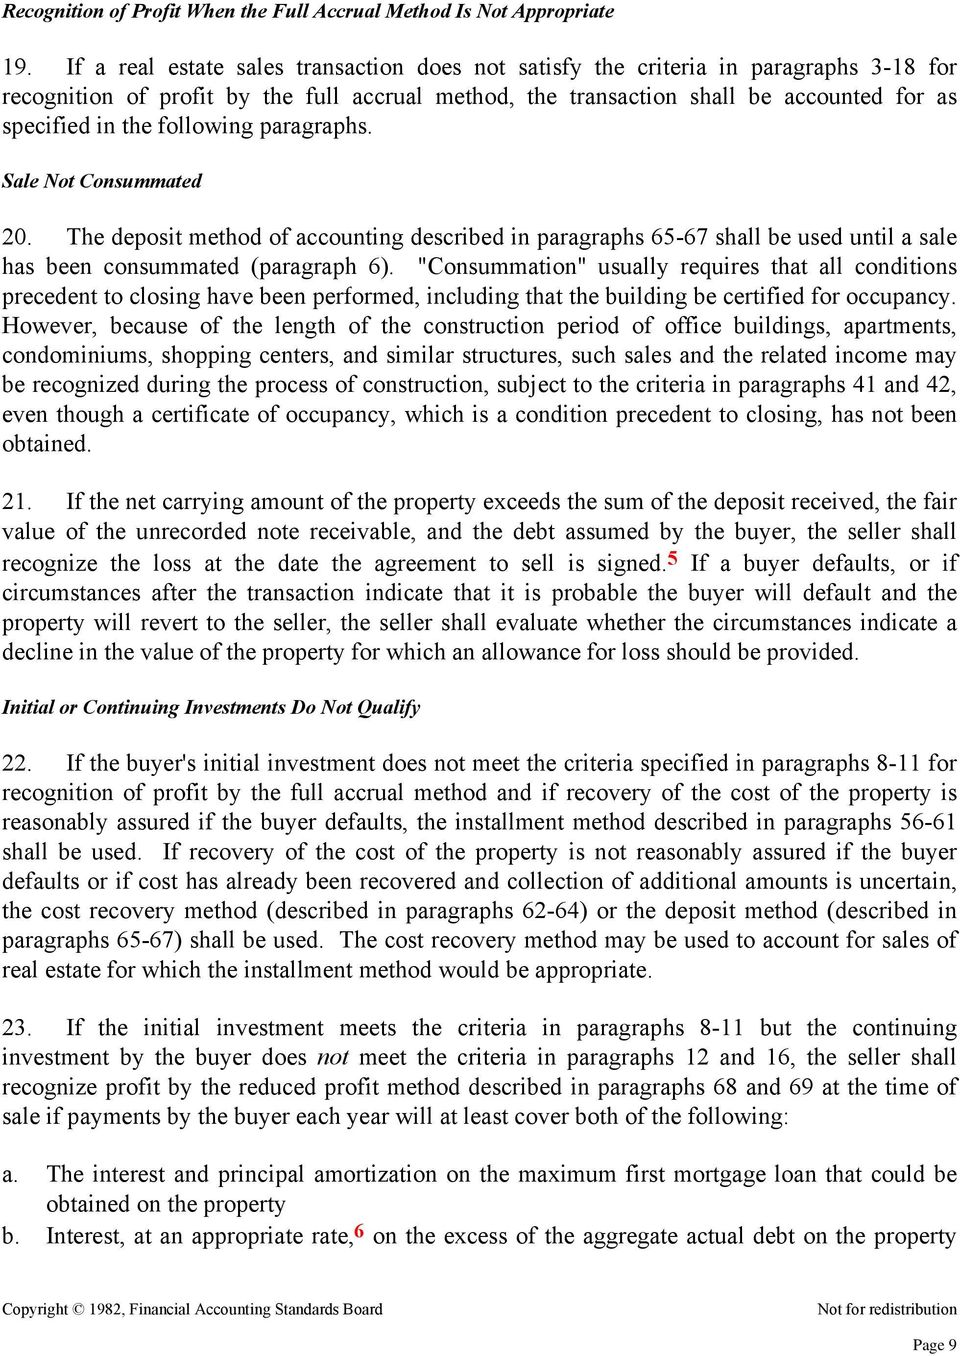 paragraph about accounting